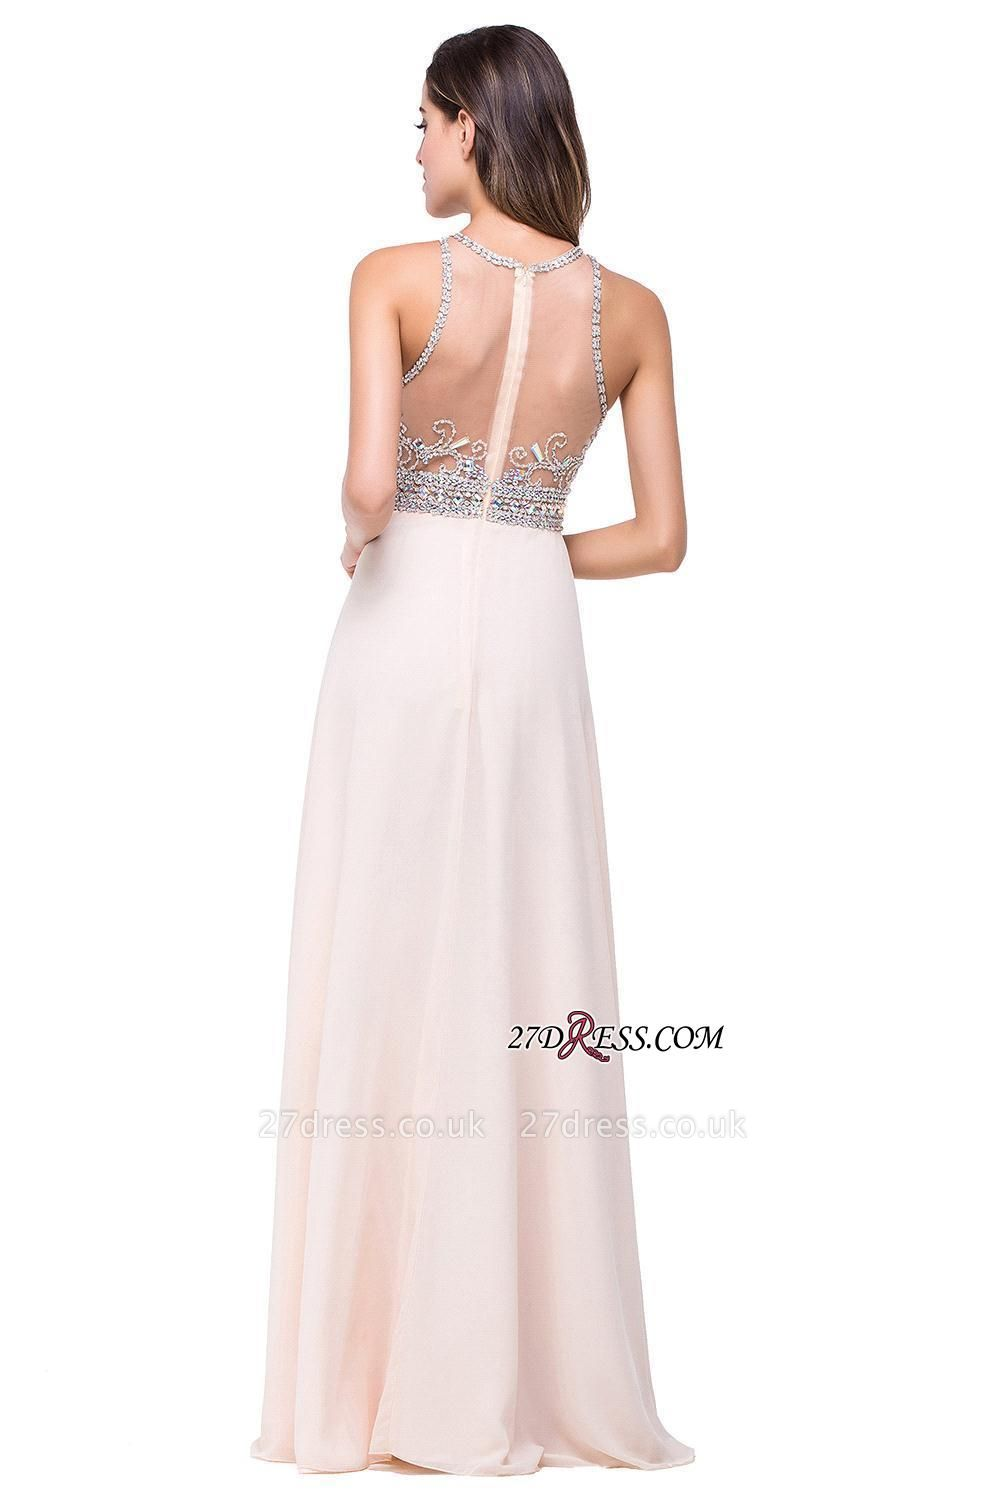 Chiffon Sleeveless Light-Champagne Long Crystals Prom Dress UKes UK BA6131